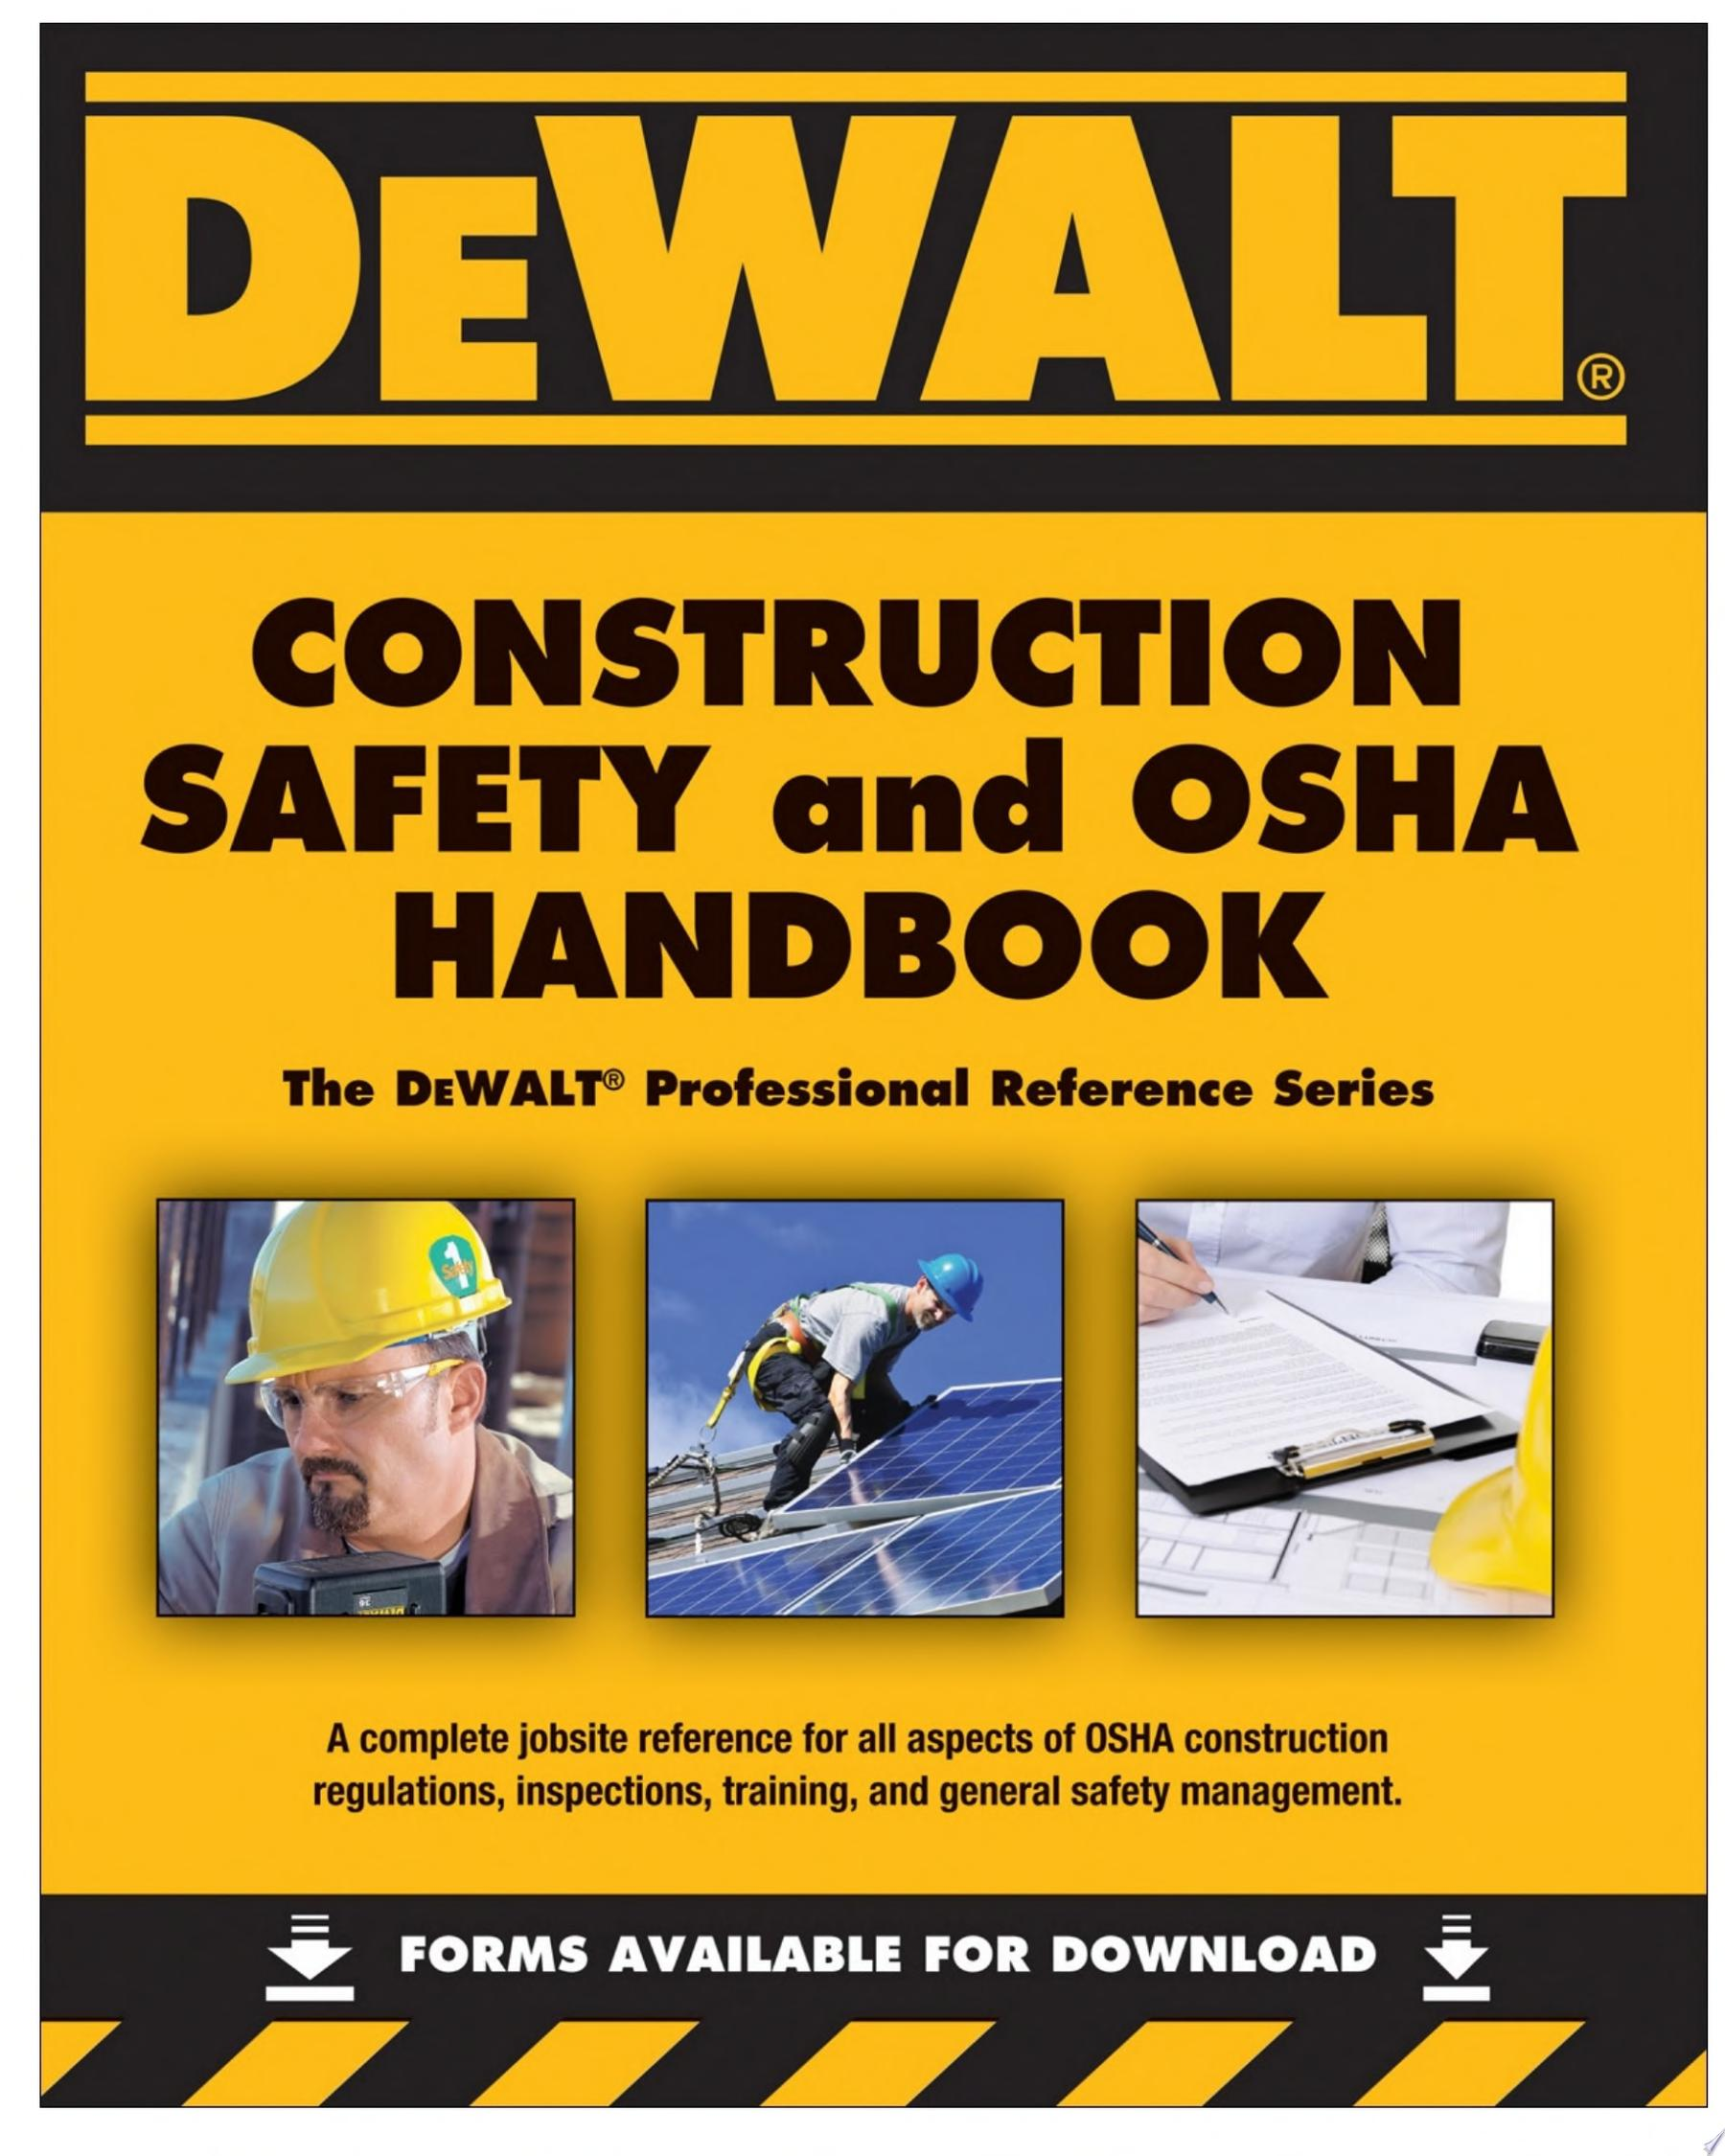 DEWALT Construction Safety   OSHA Handbook